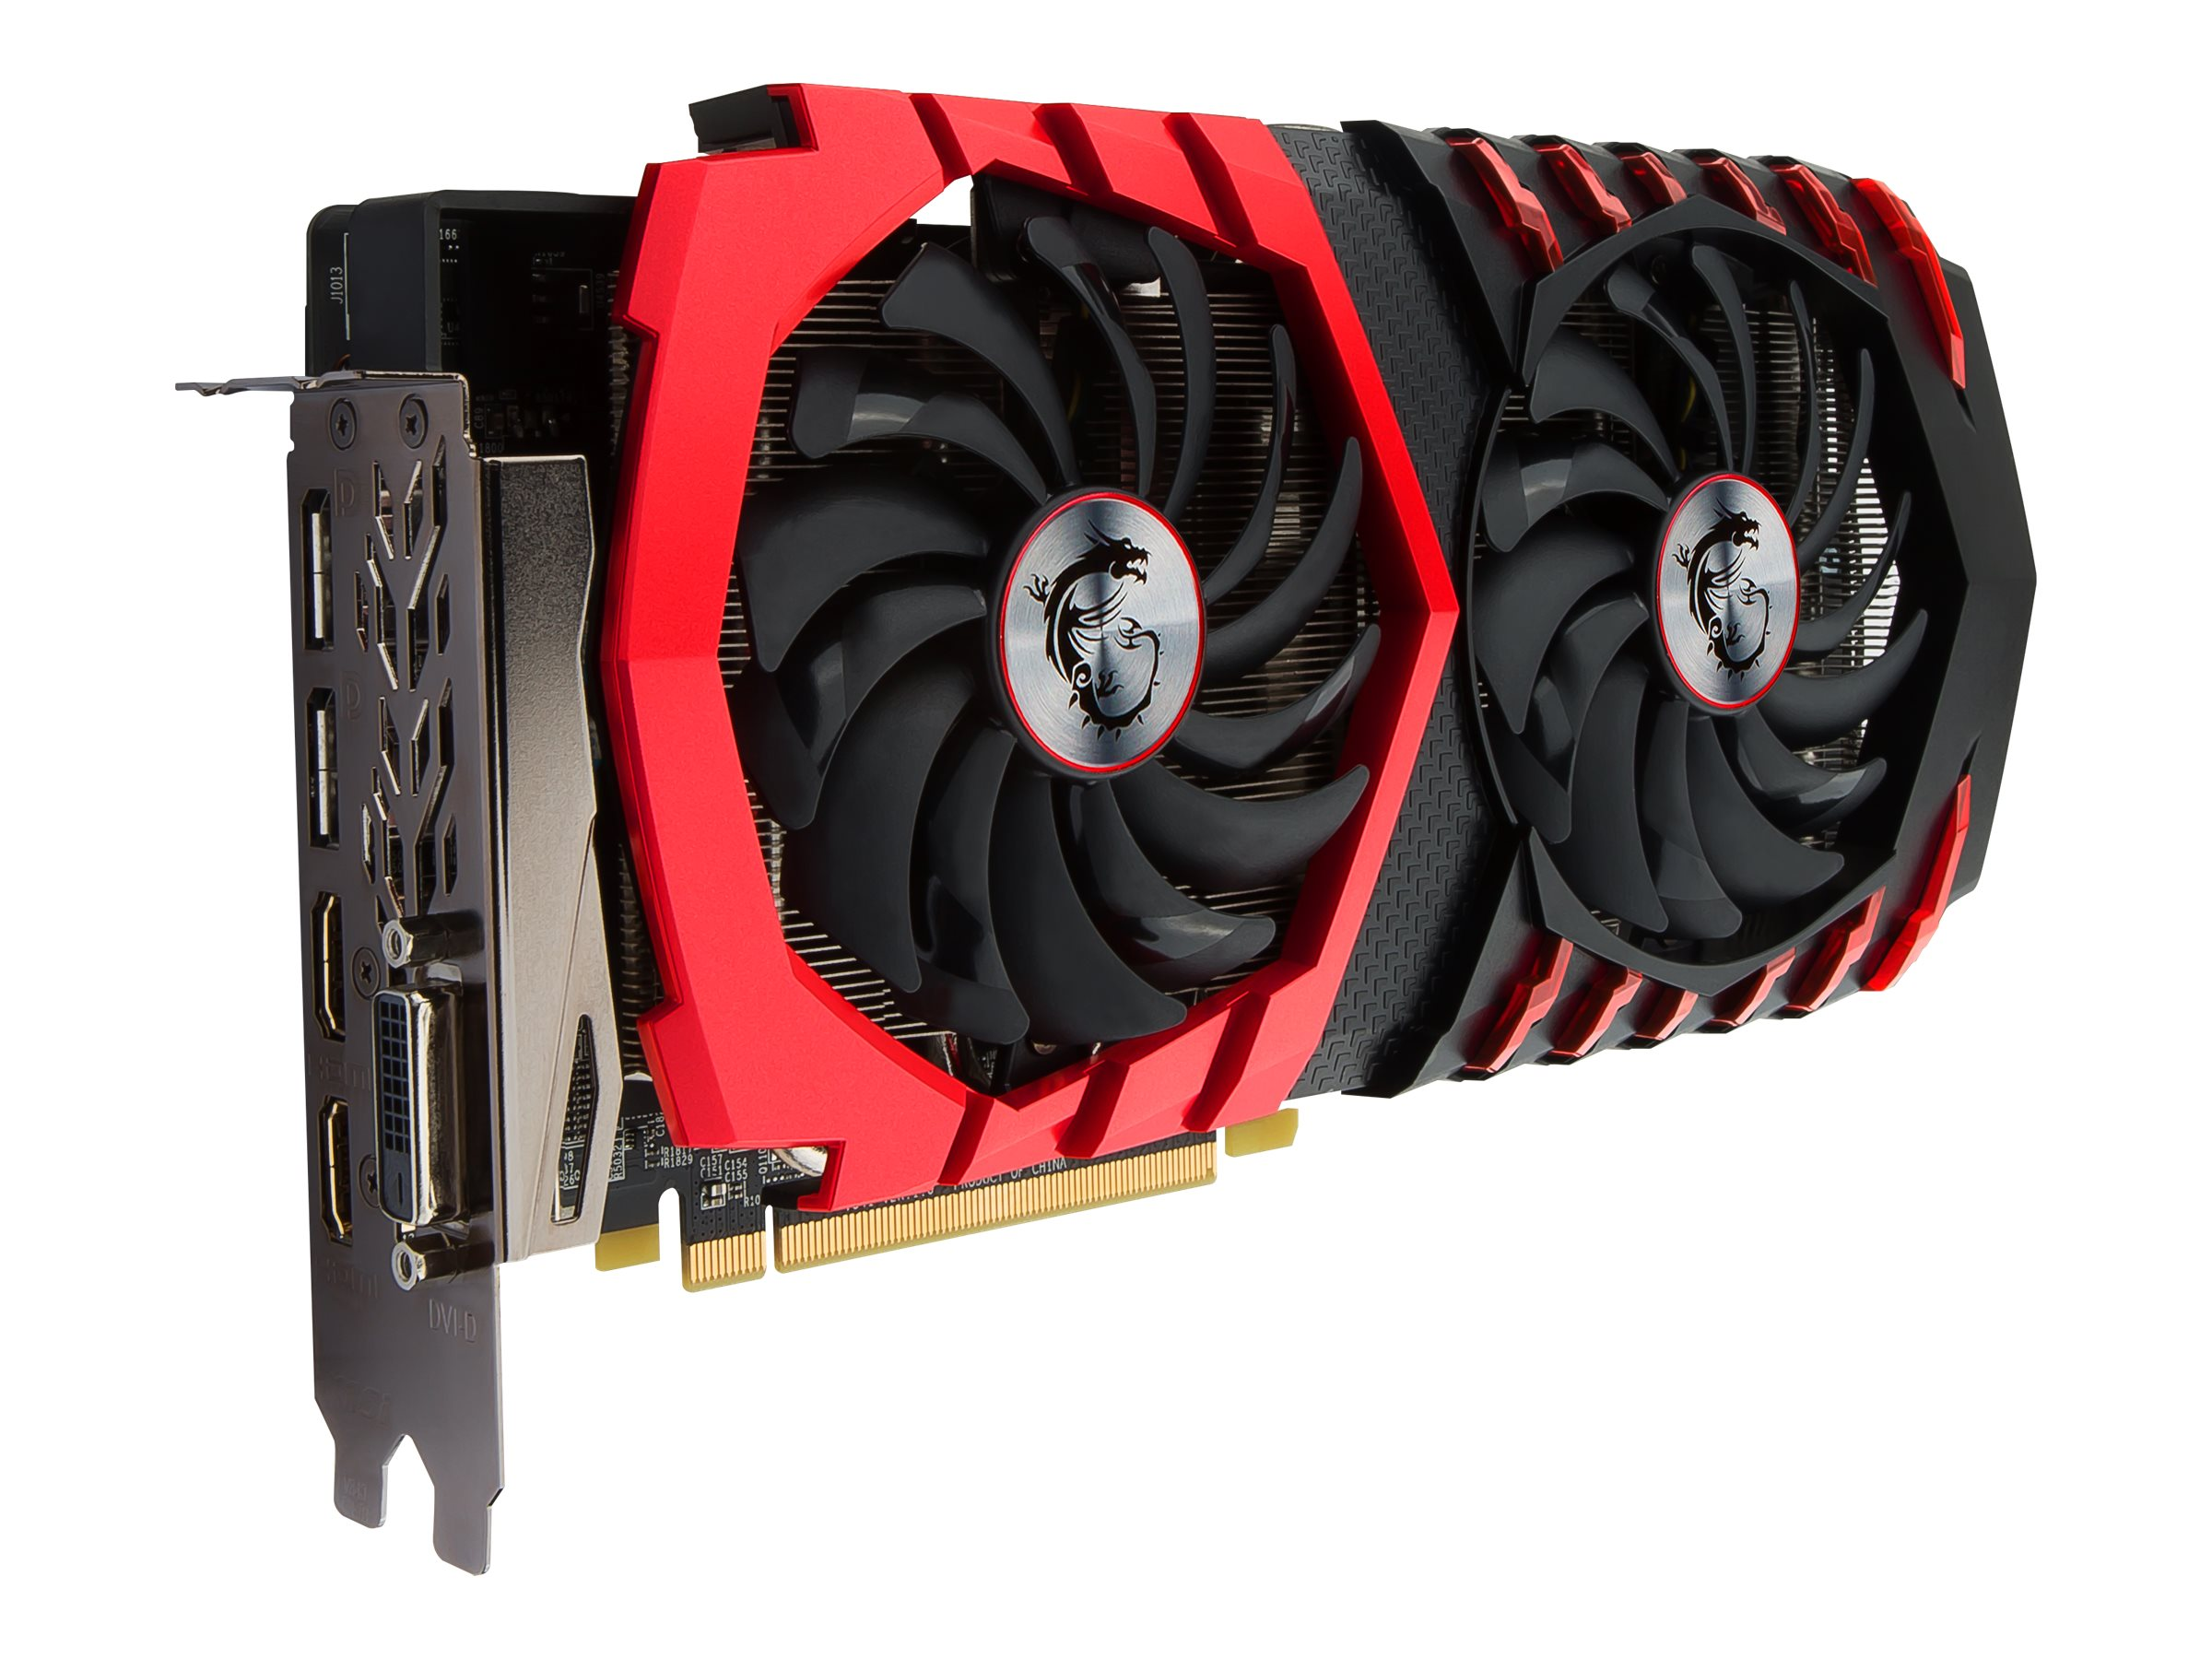 Microstar RX 480 GAMING X 8G Image 2